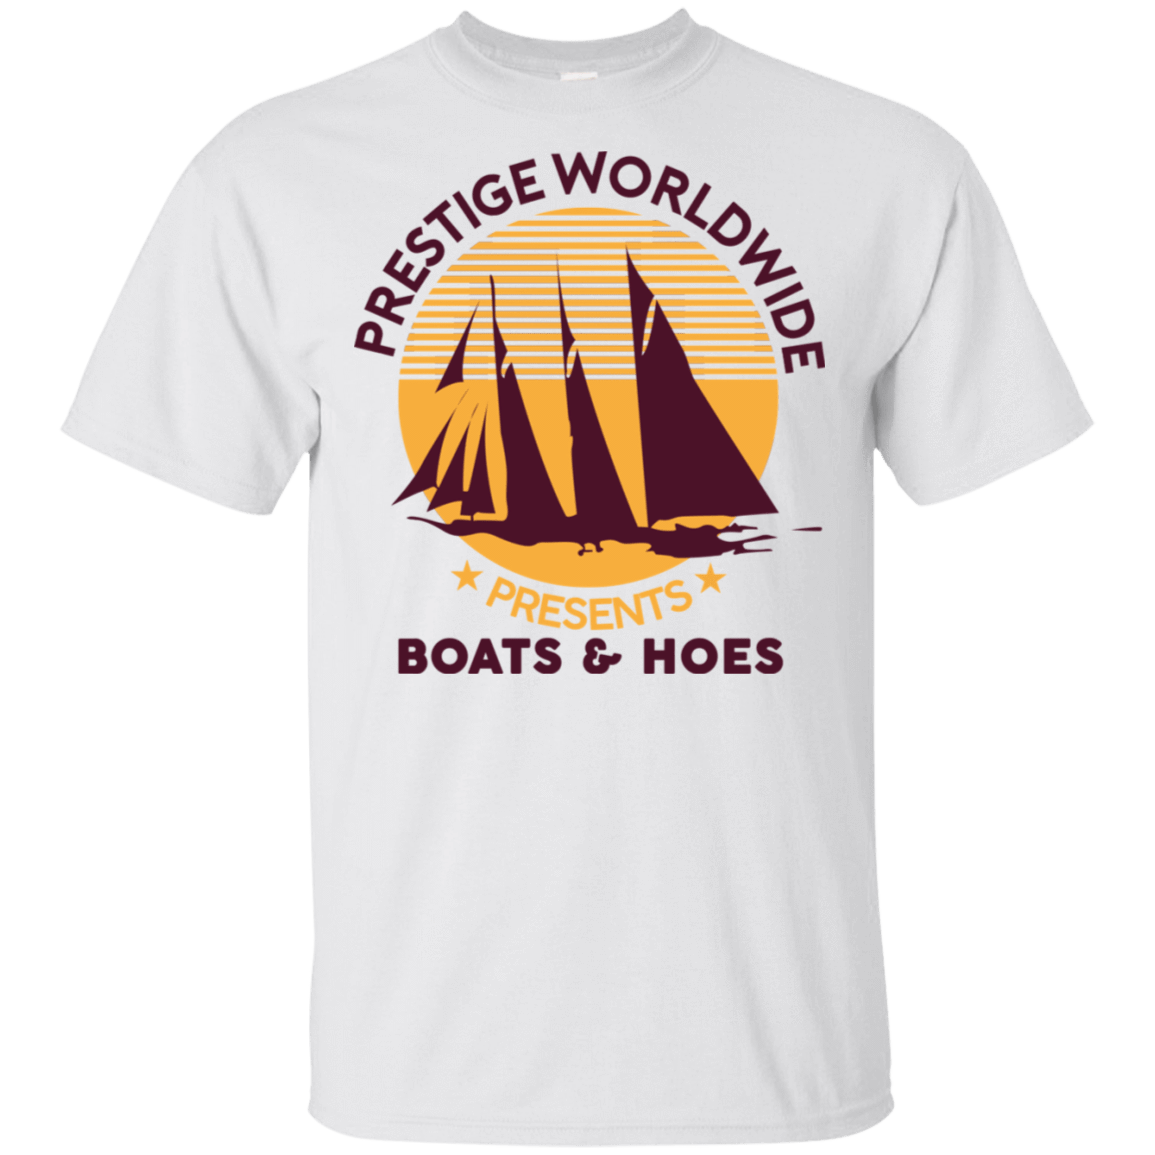 Prestige Worldwide Presents Boats & Hoes 22-114-72790288-253 - Tee Ript